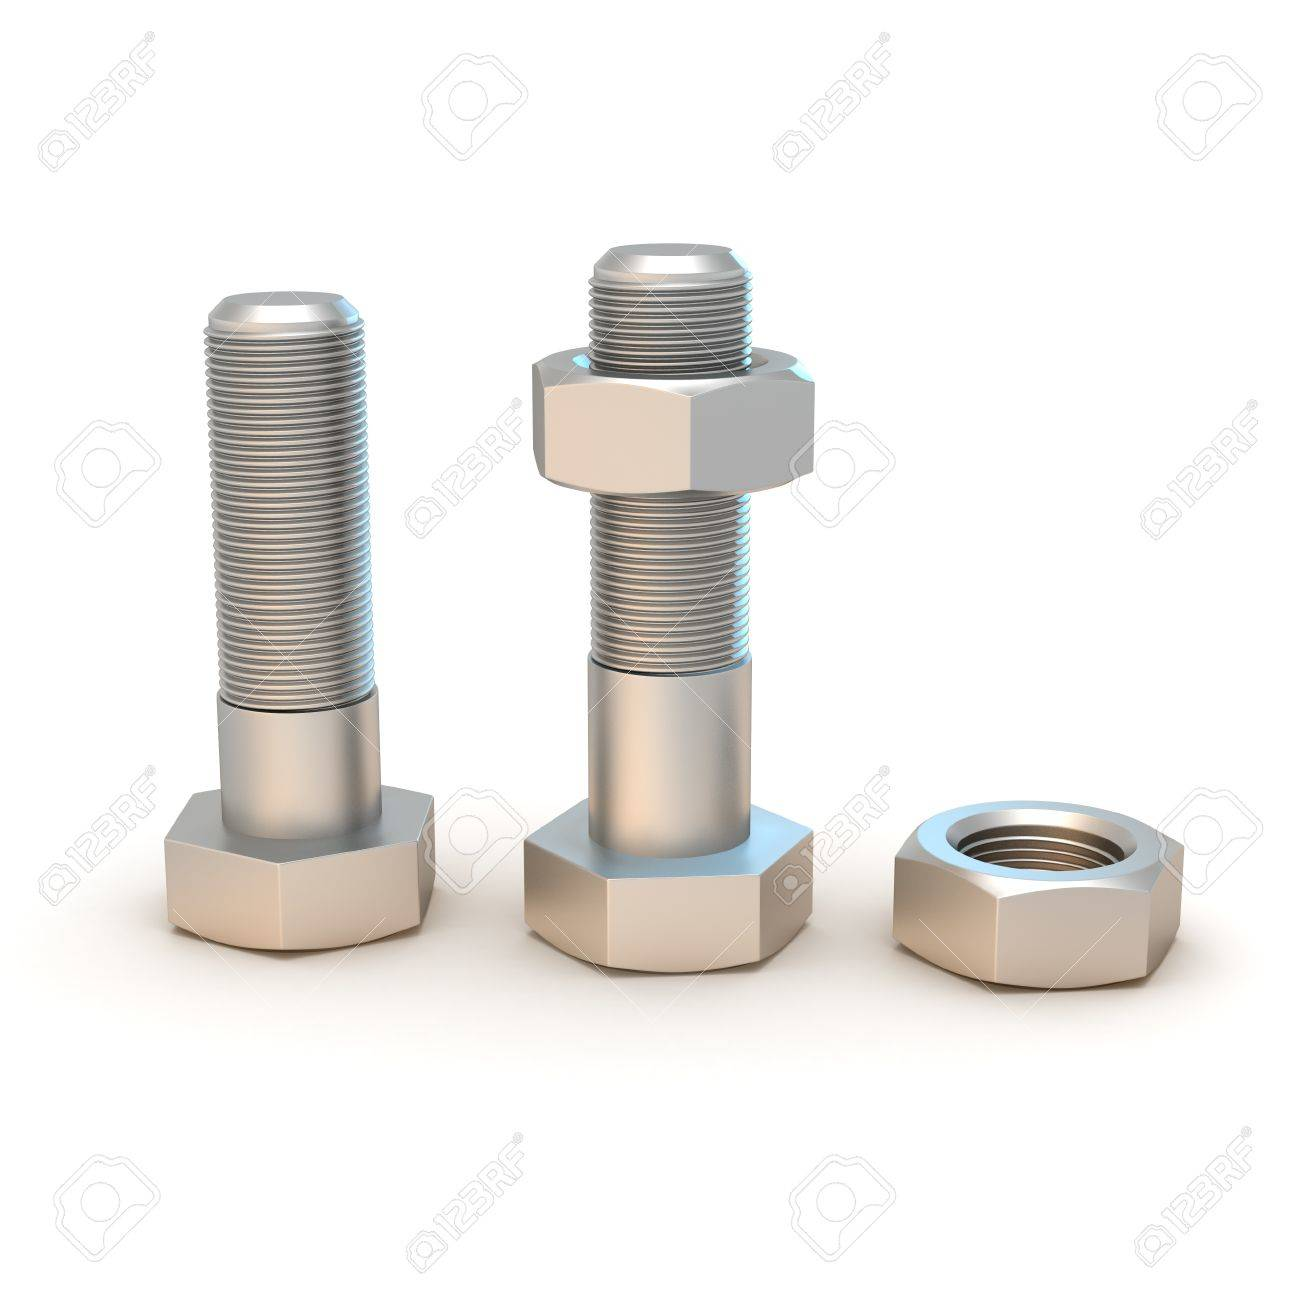 Two metal bolts and screws isolated on the white background Stock Photo - 9543469